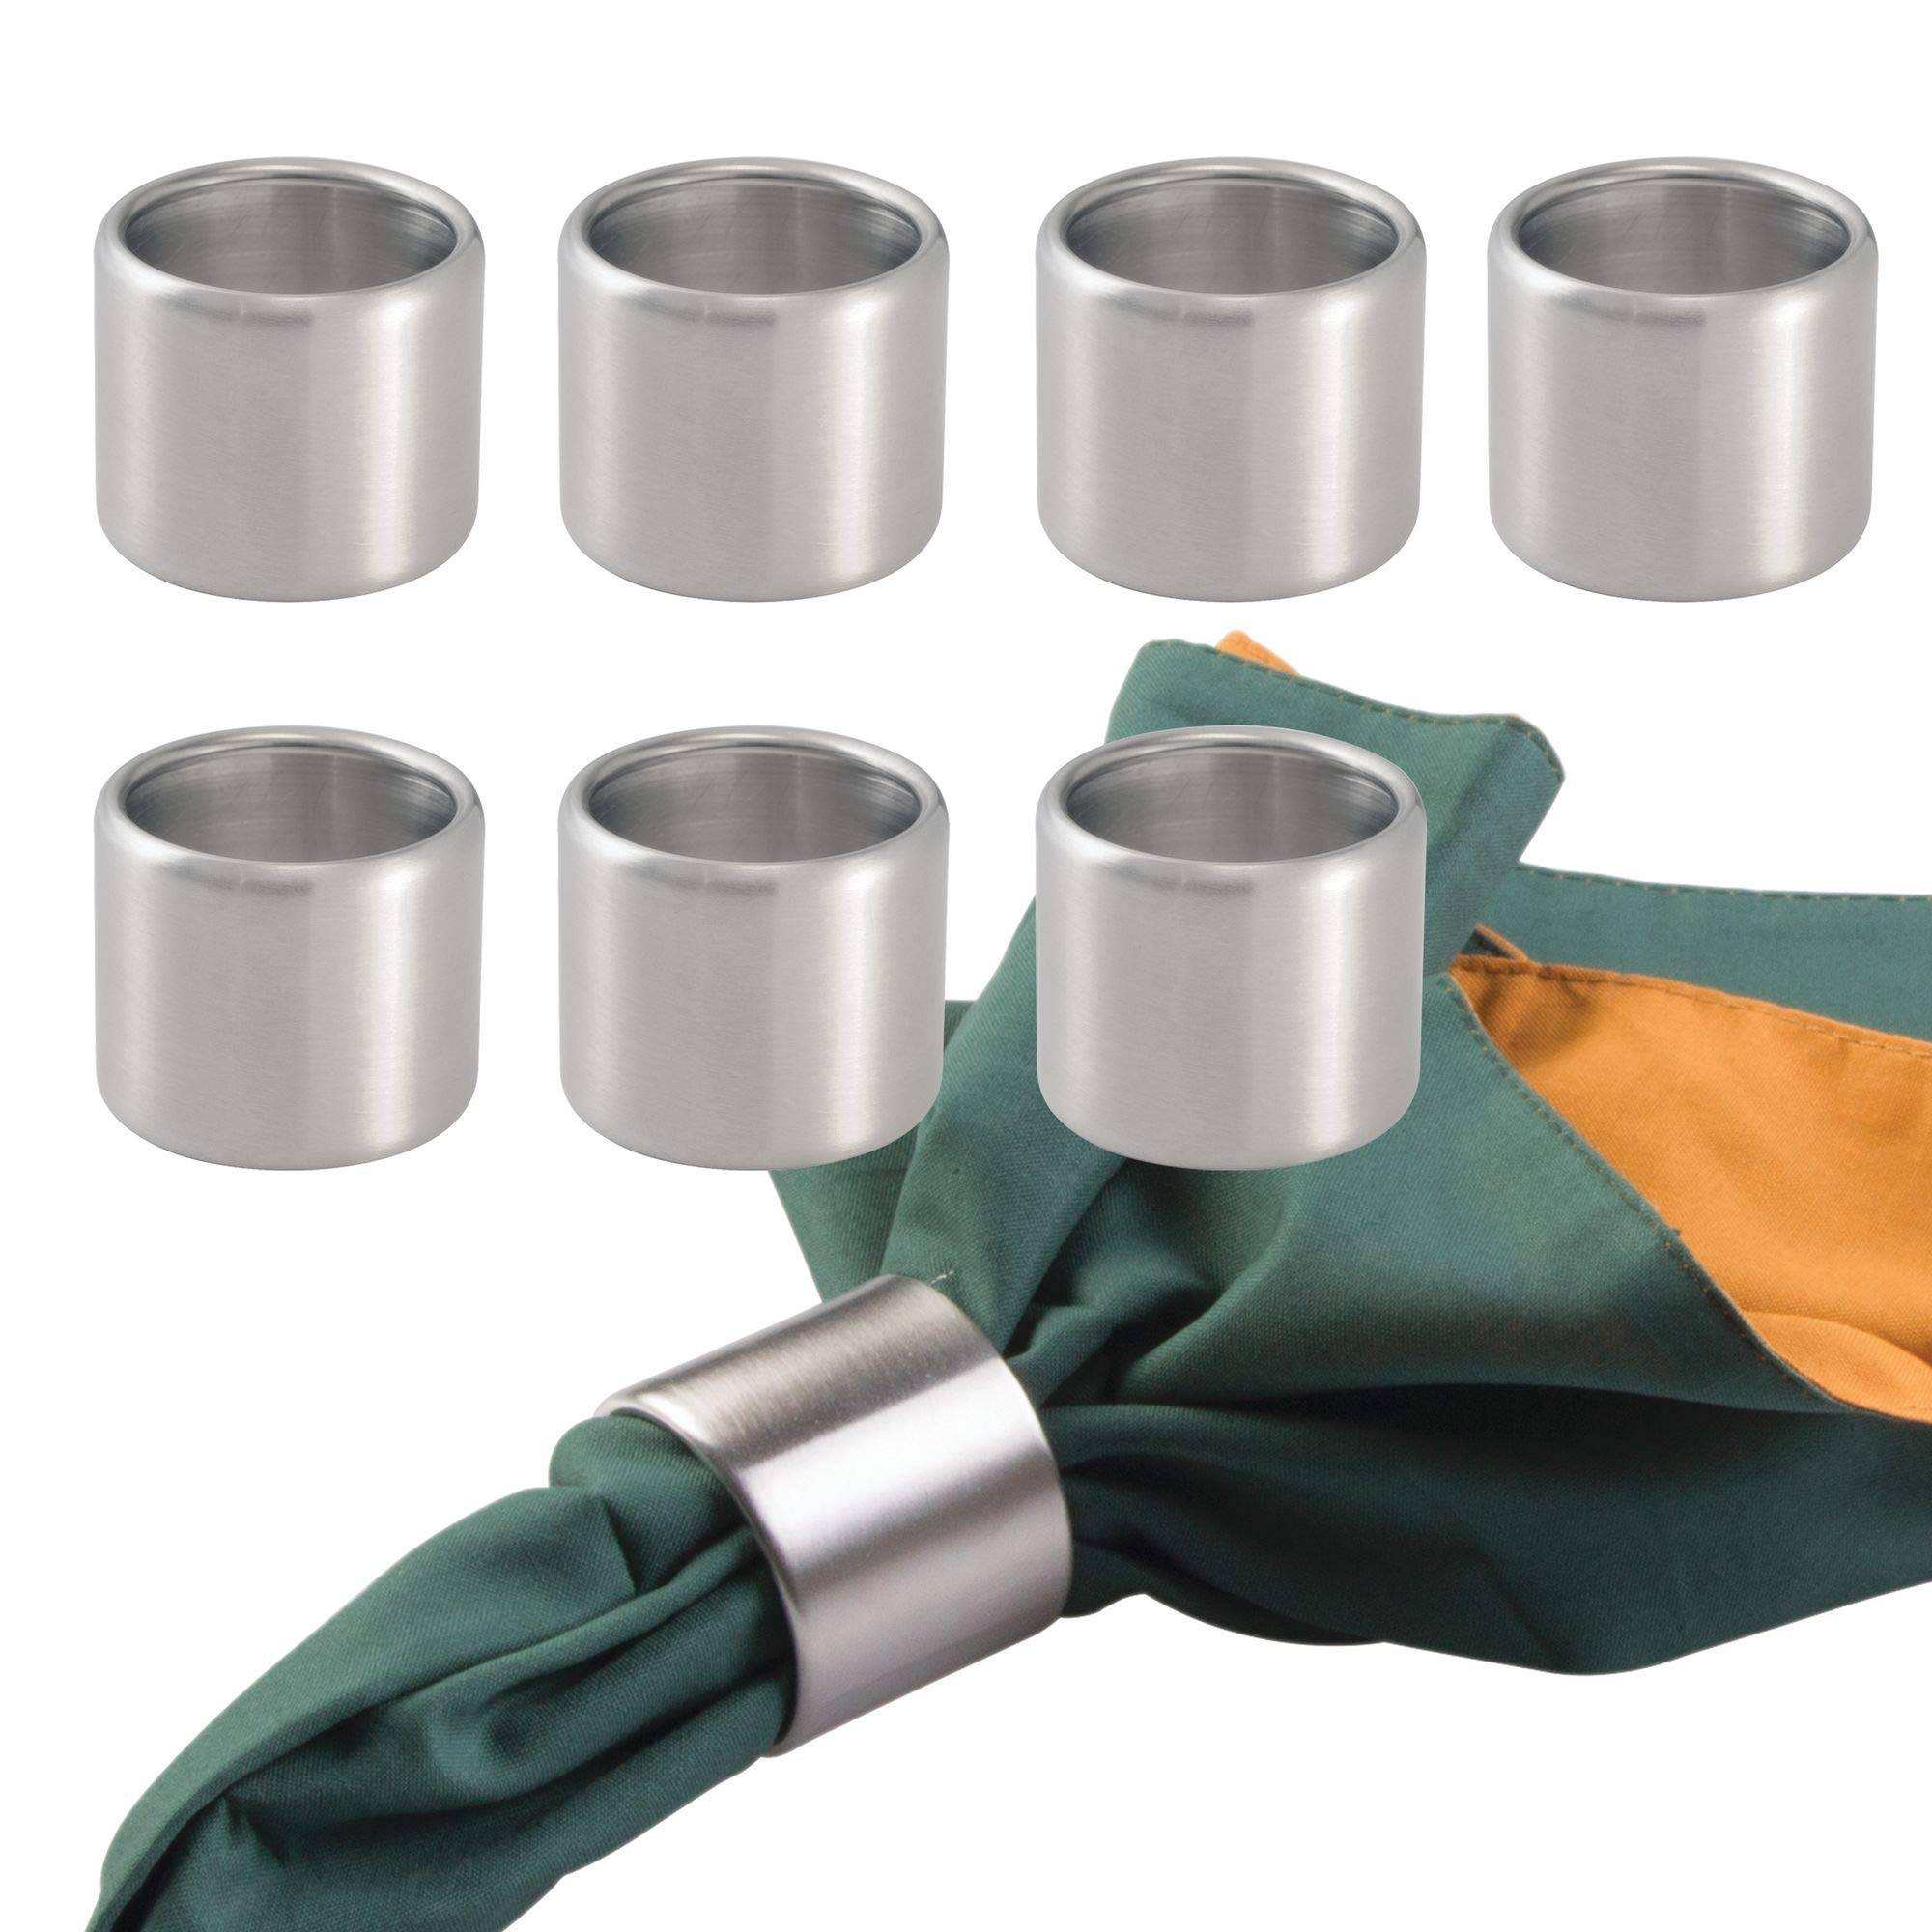 mDesign Napkin Rings for Home, Kitchen, Dining Room - Pack of 8, Brushed Stainless Steel